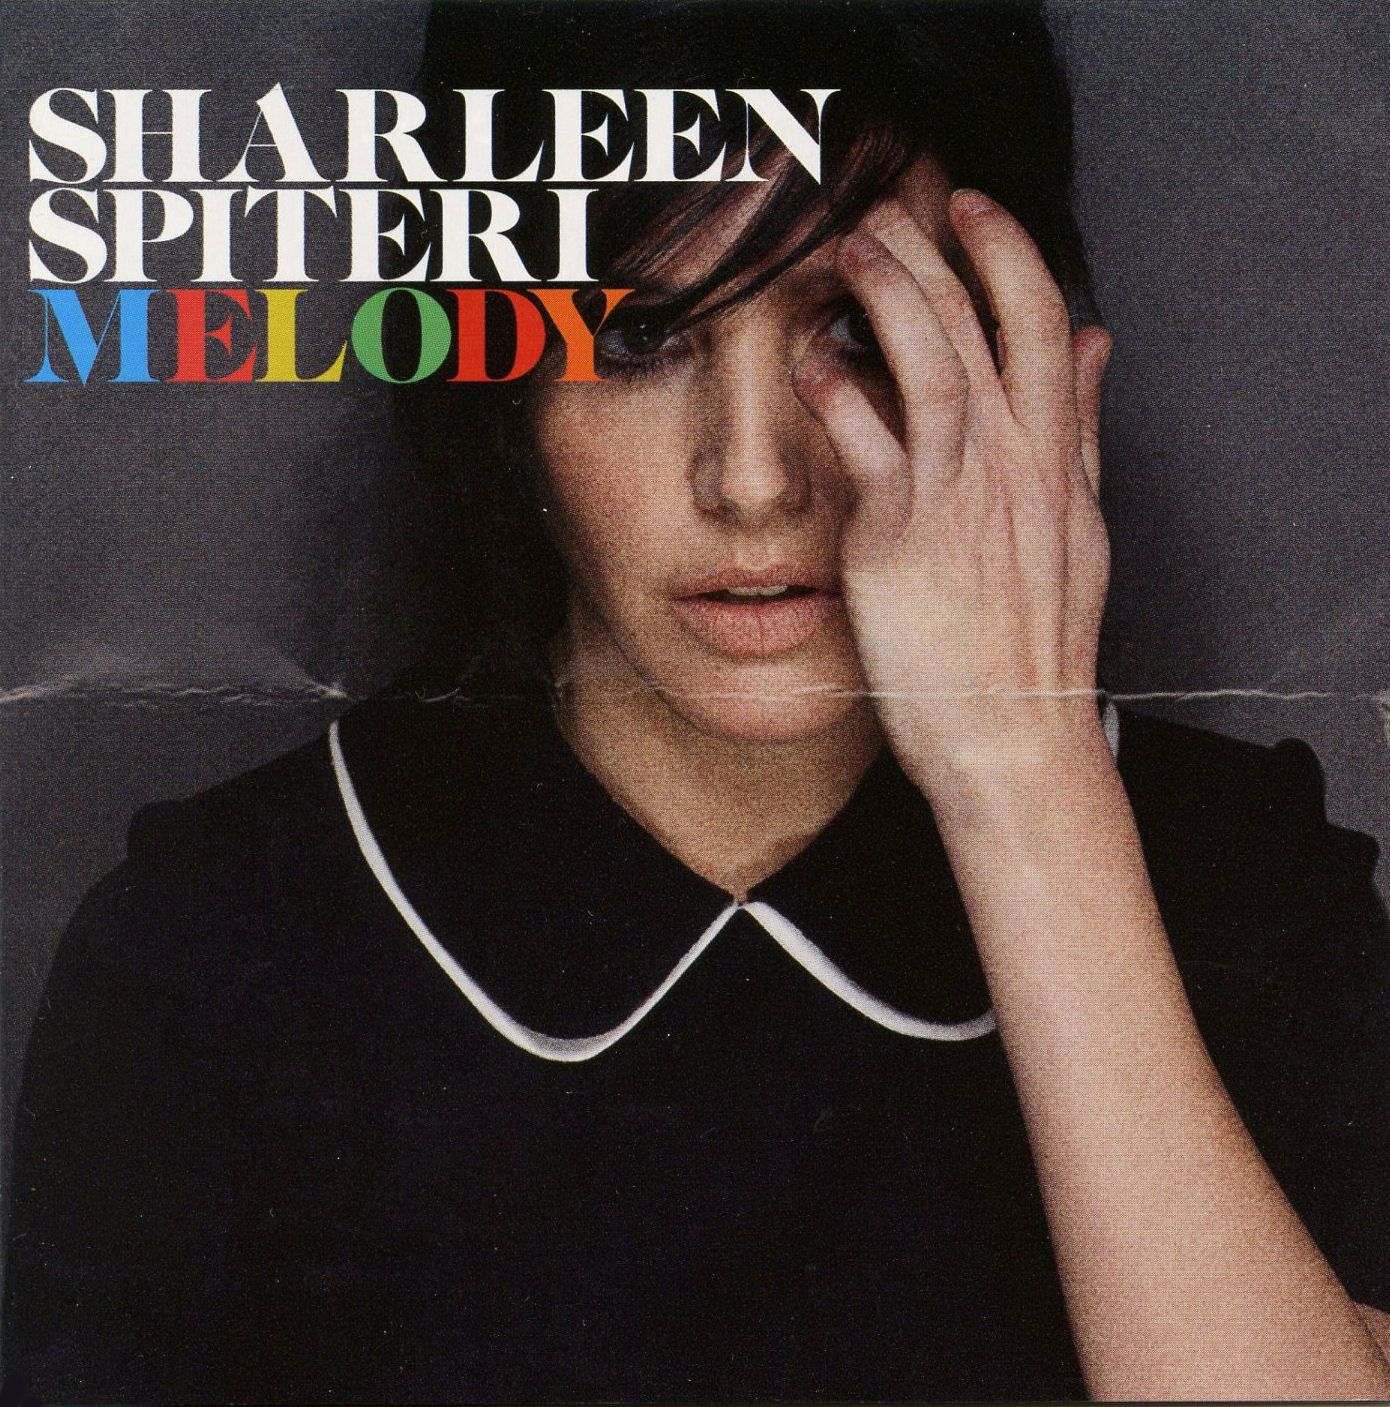 Sharleen Spiteri - Melody album cover